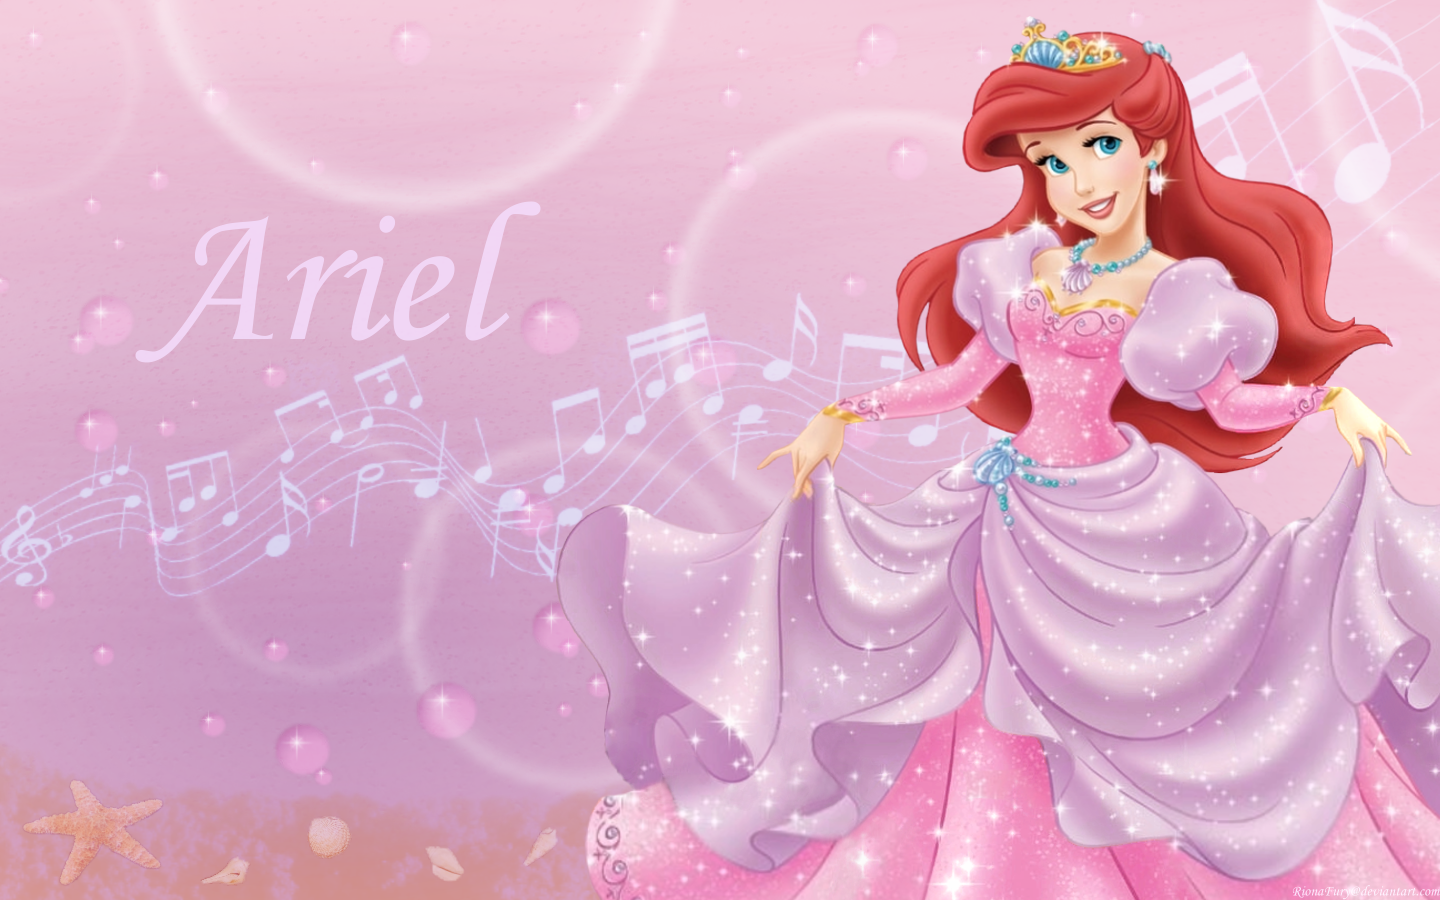 Disney Princess Ariel wallpaper WallpapersHello KittyPretty thi 1440x900